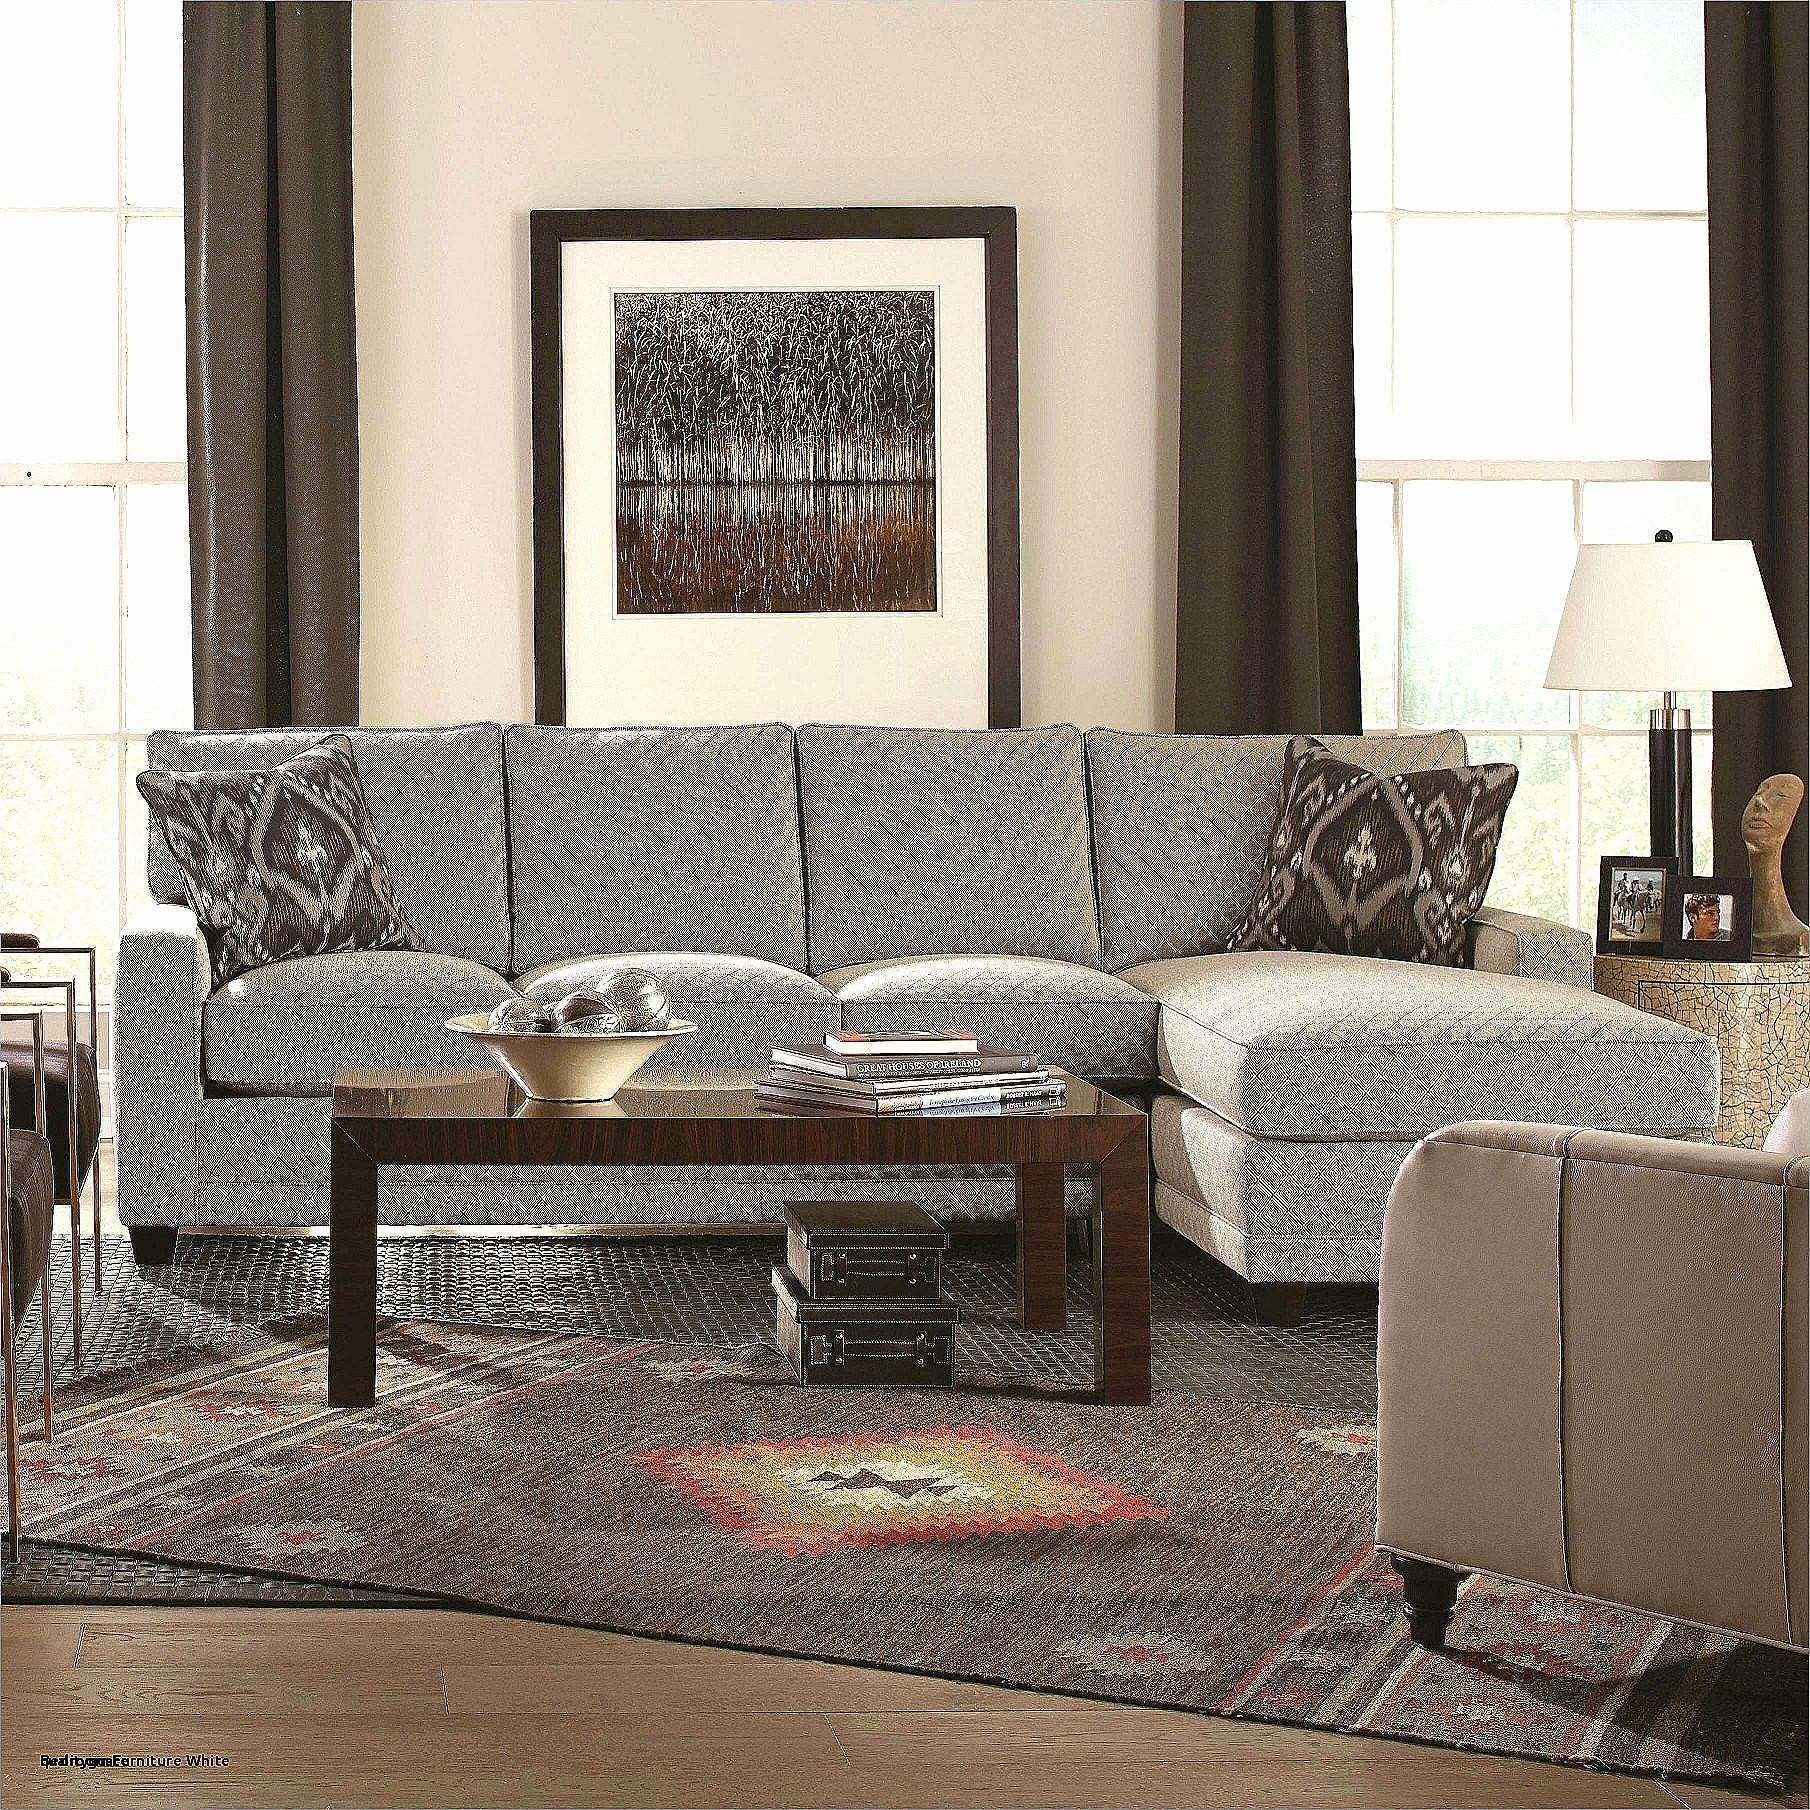 gray and white living room fresh 42 best chairs design for bedroom of gray and white living room